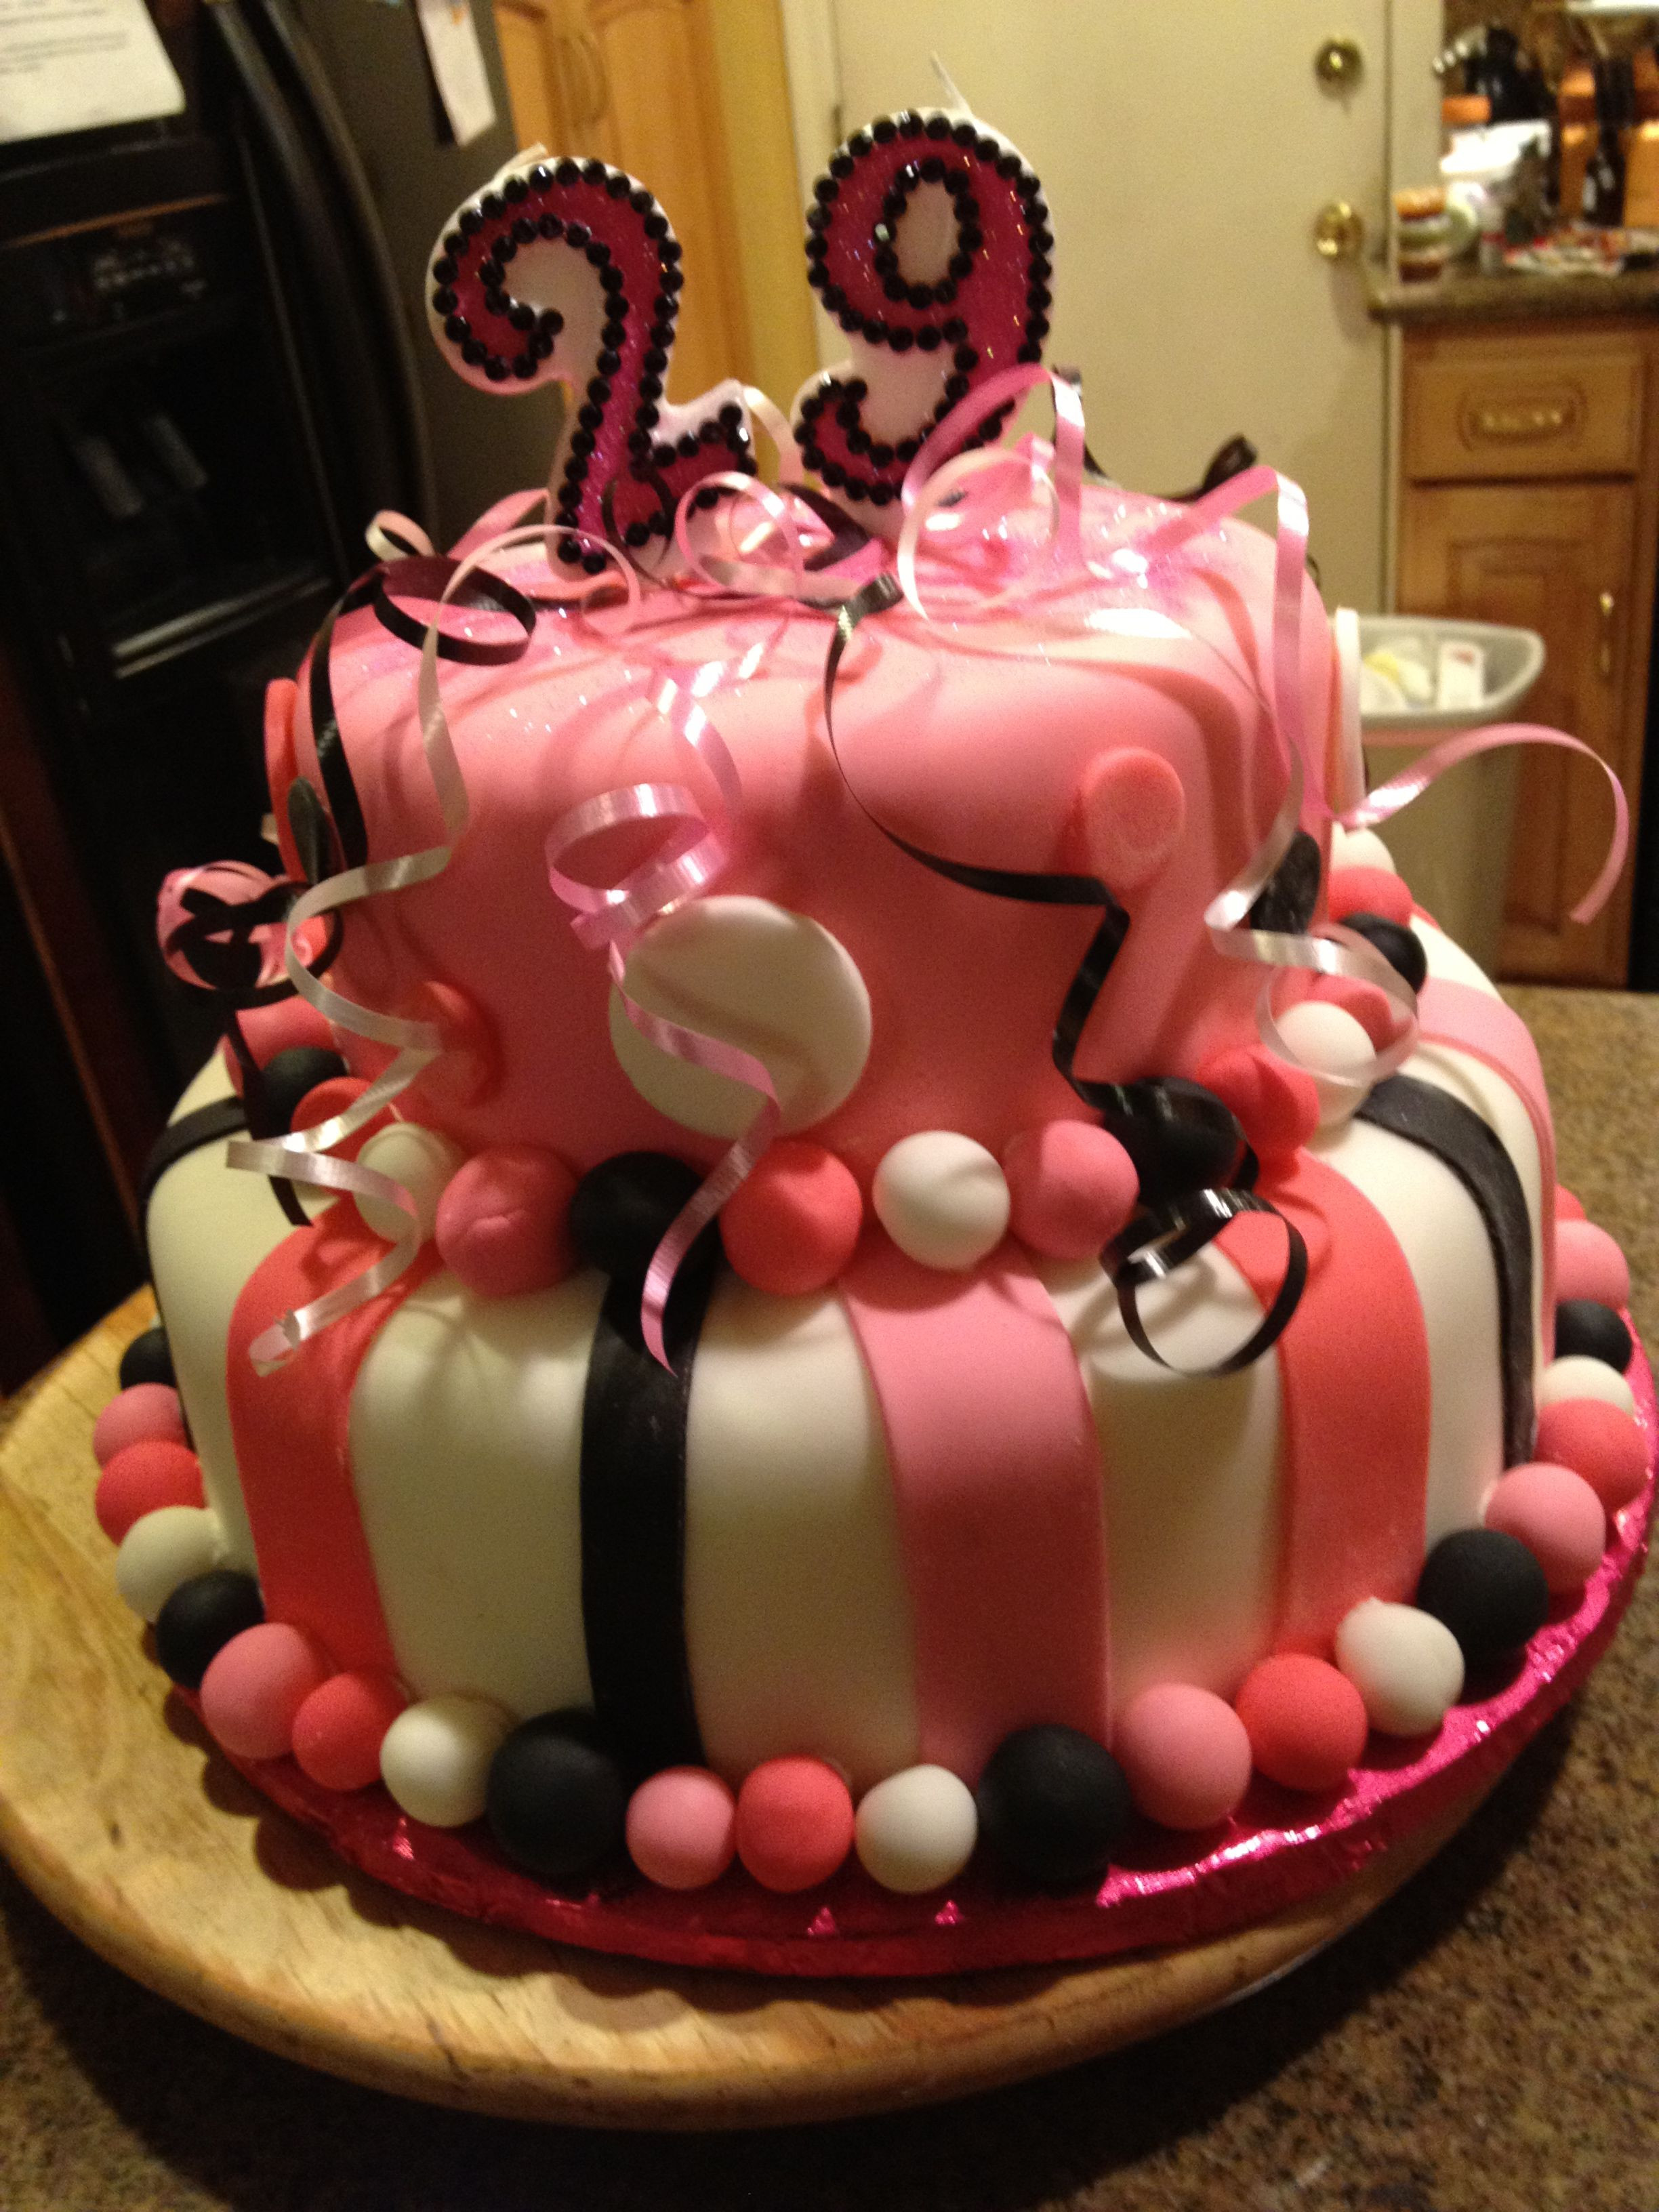 Best ideas about 29th Birthday Cake . Save or Pin 29th Birthday cake CAKES Now.